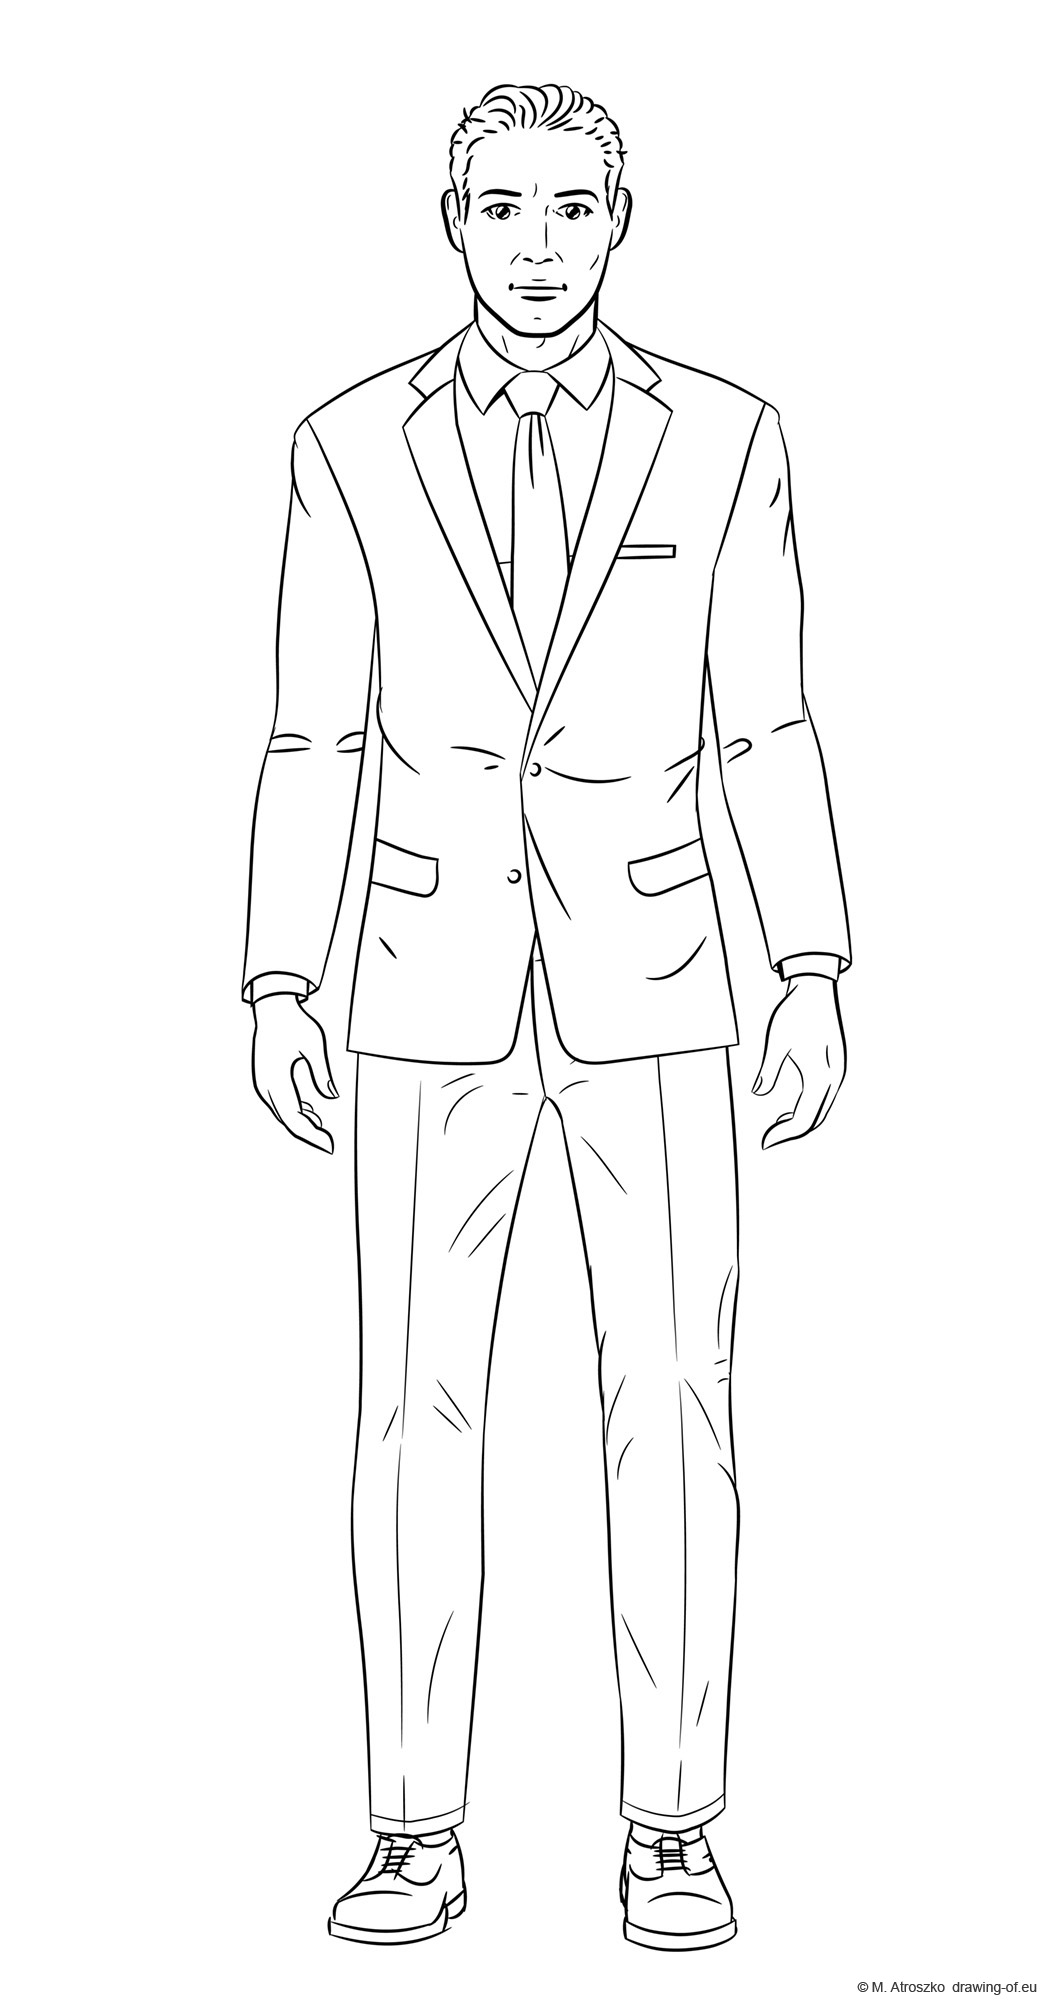 Drawing of man in suite